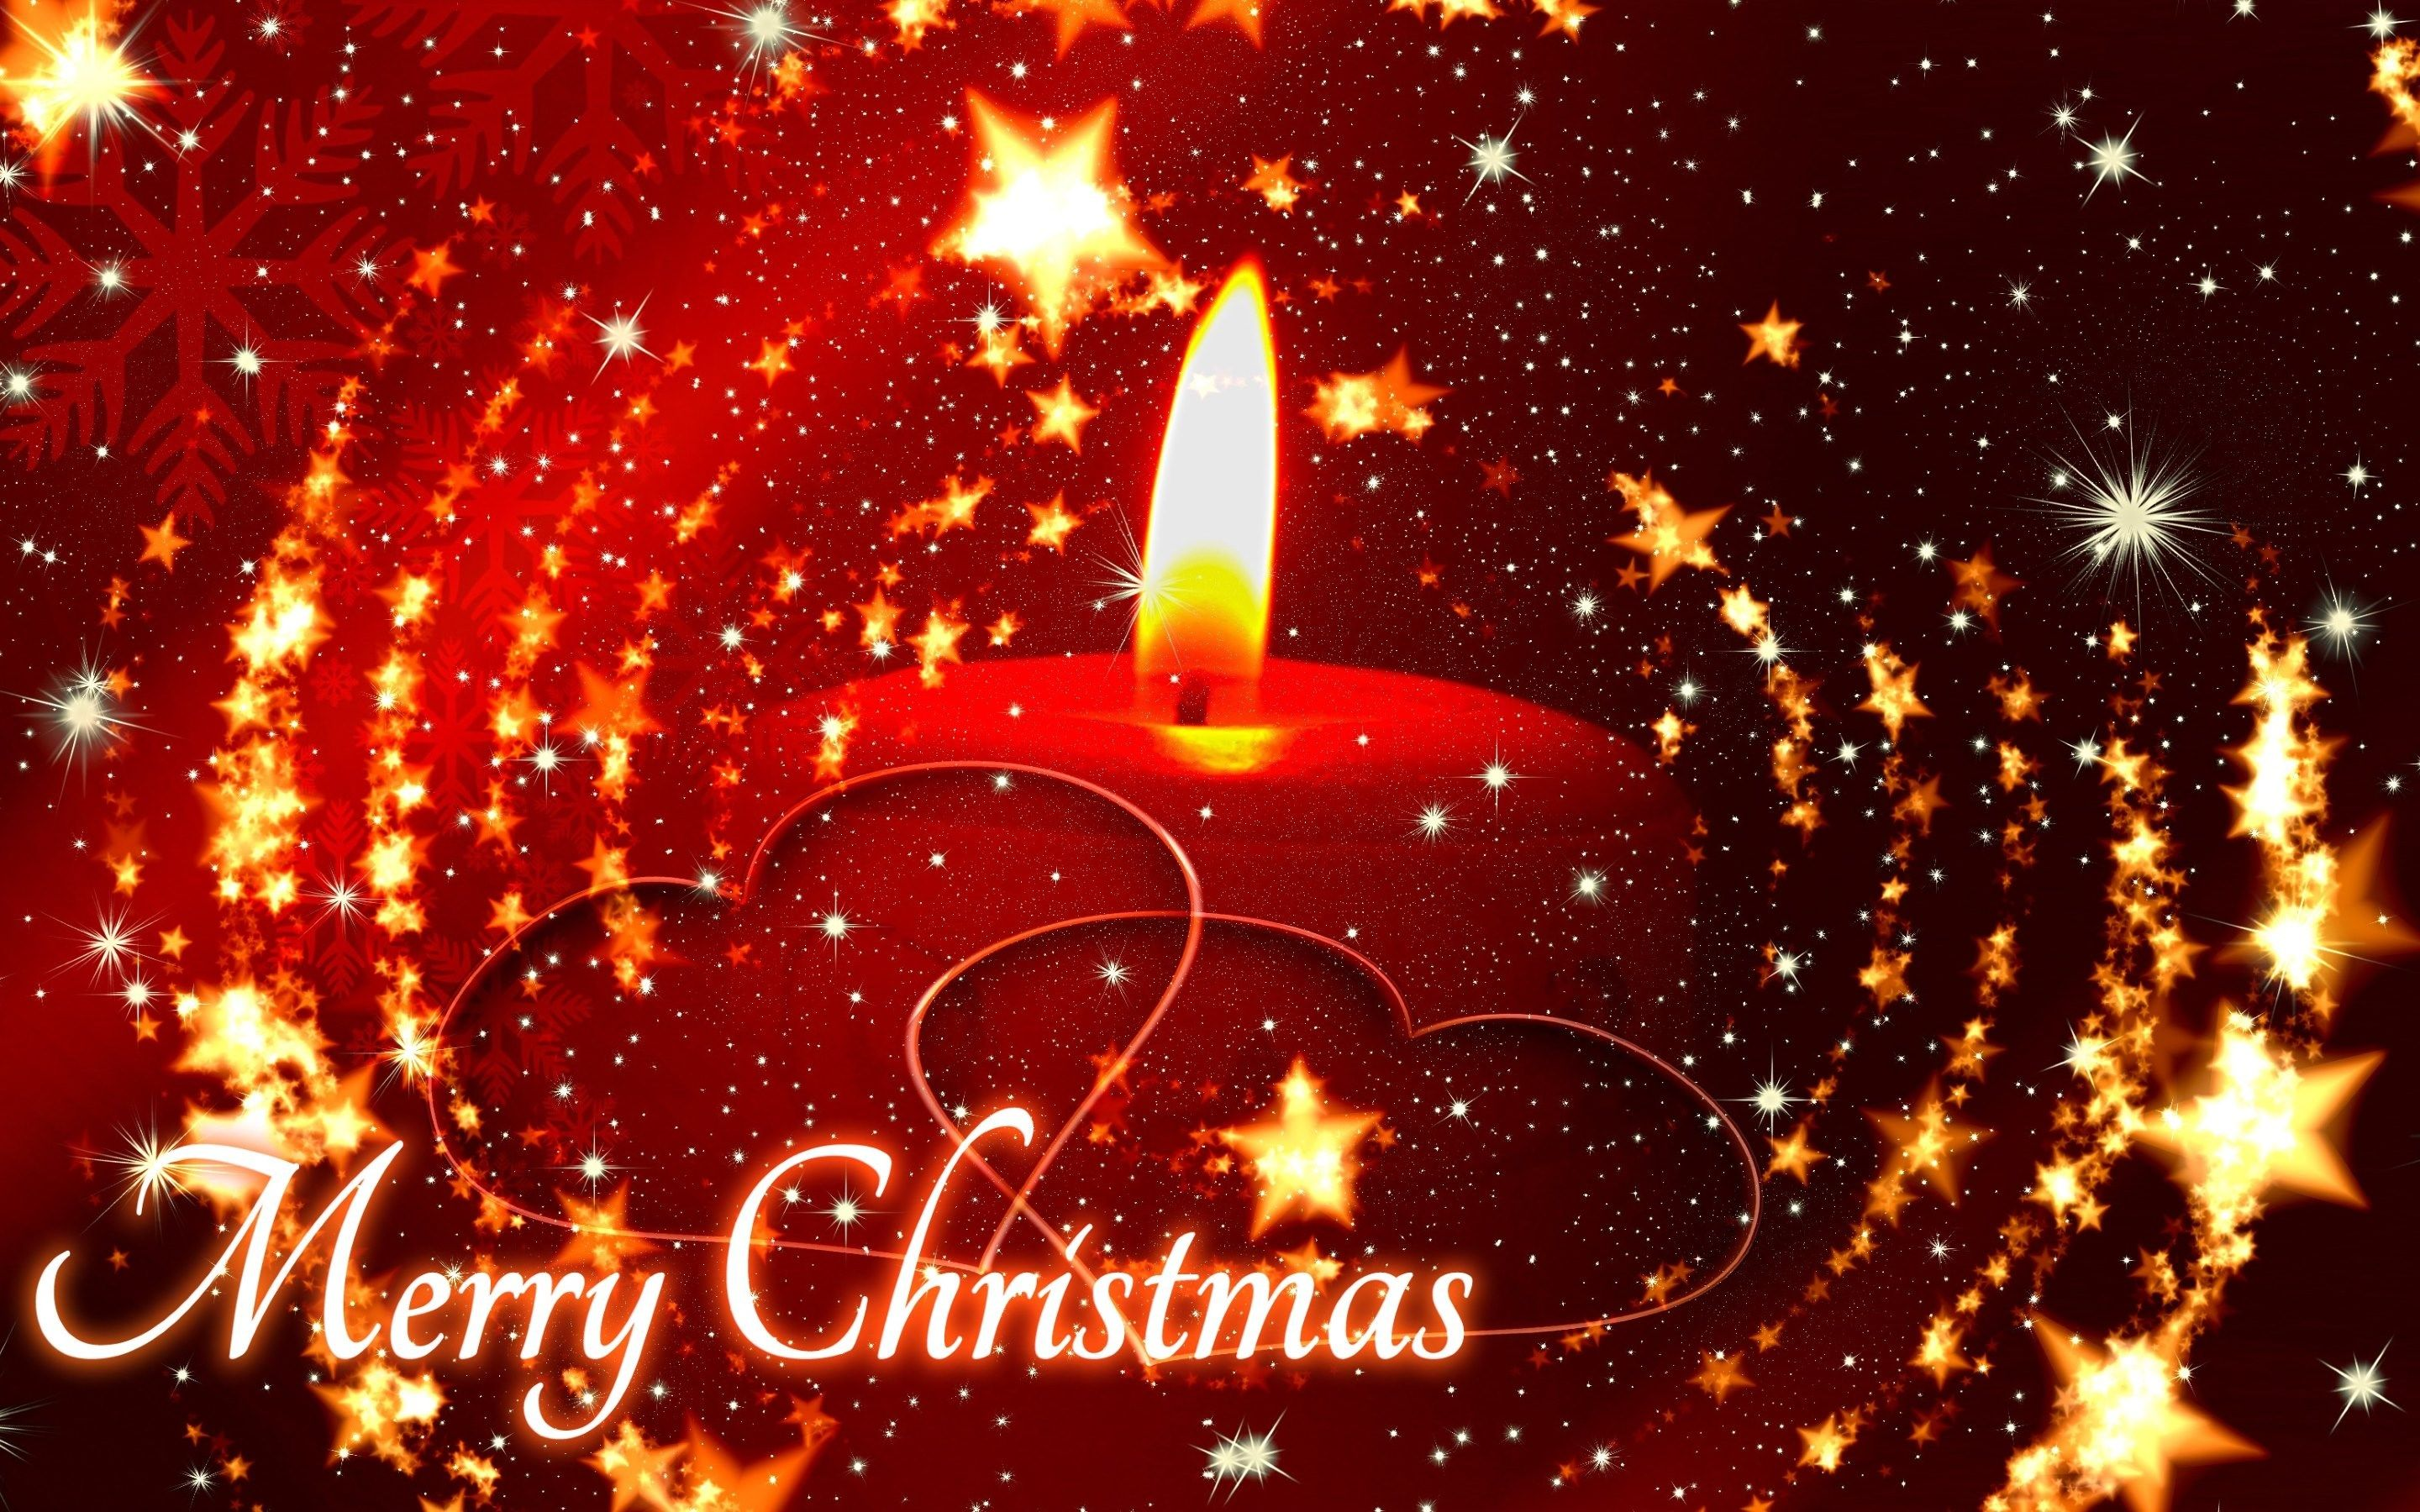 Amazing Wallpaper Music Christmas - 3b8d4ab991b7d74fdfb1ff1f15faed6a  Collection_446960.jpg